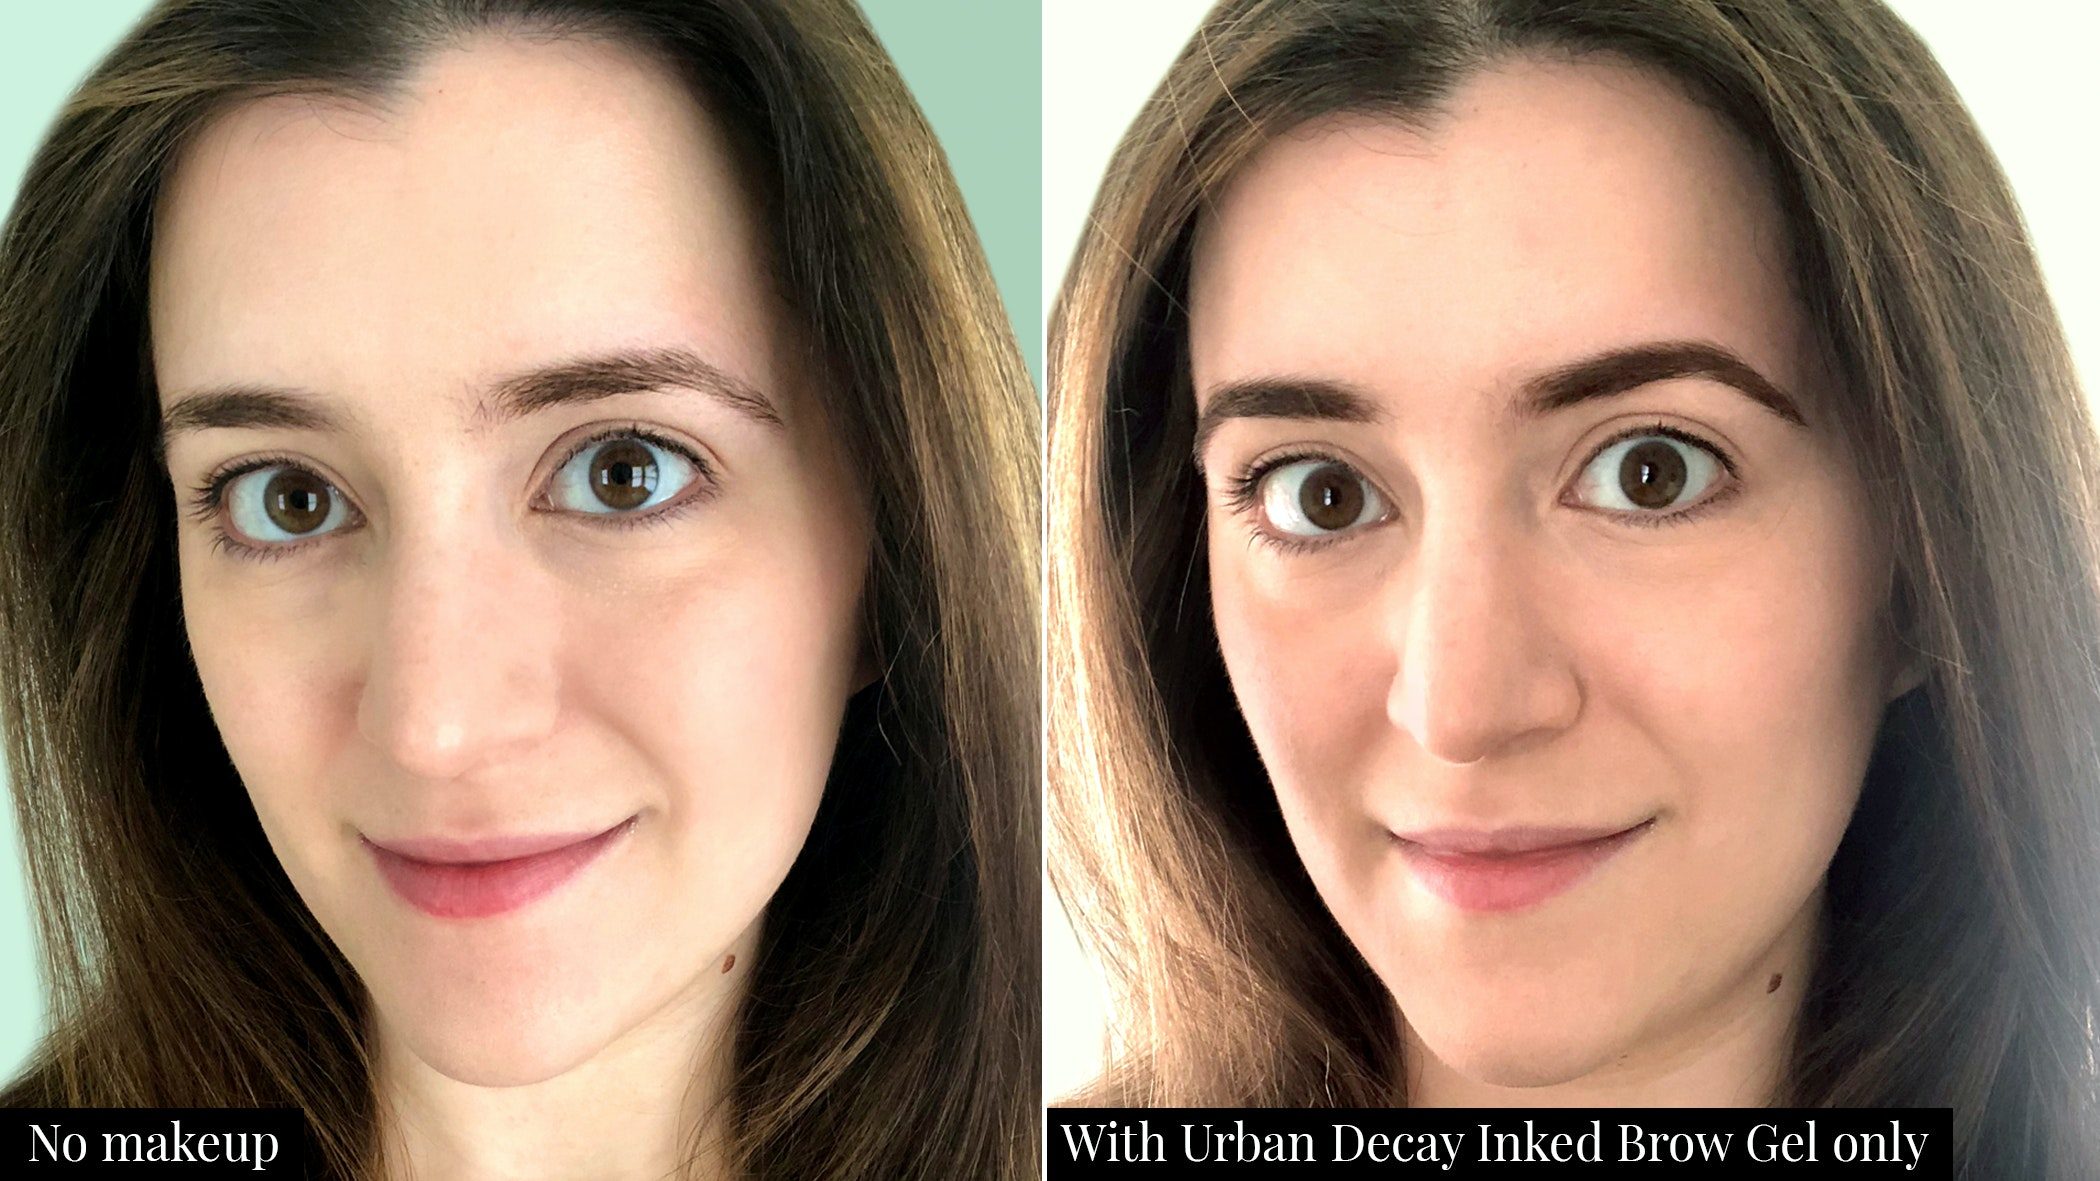 Urban Decay Inked Brow Gel before and after